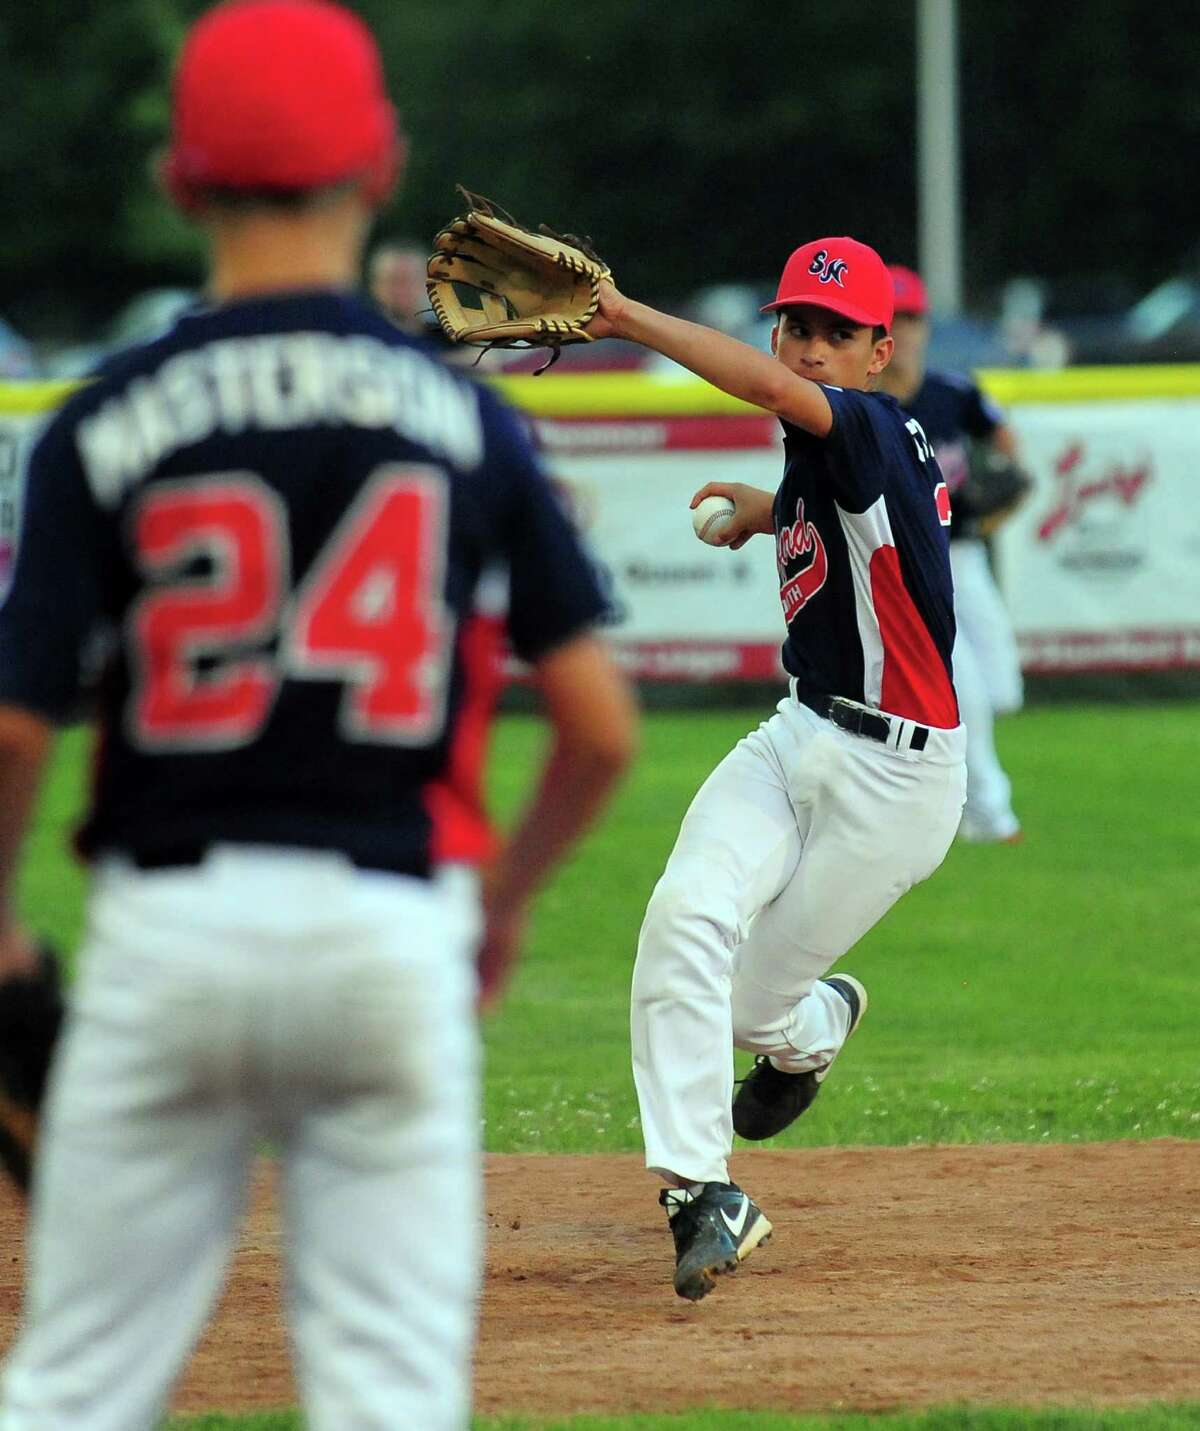 Stamford North shortstop Dave Collazo sends the ball to first, during little league tournament action against Hamden at Scalzi Park in Stamford, Conn., on Friday July 24, 2015.